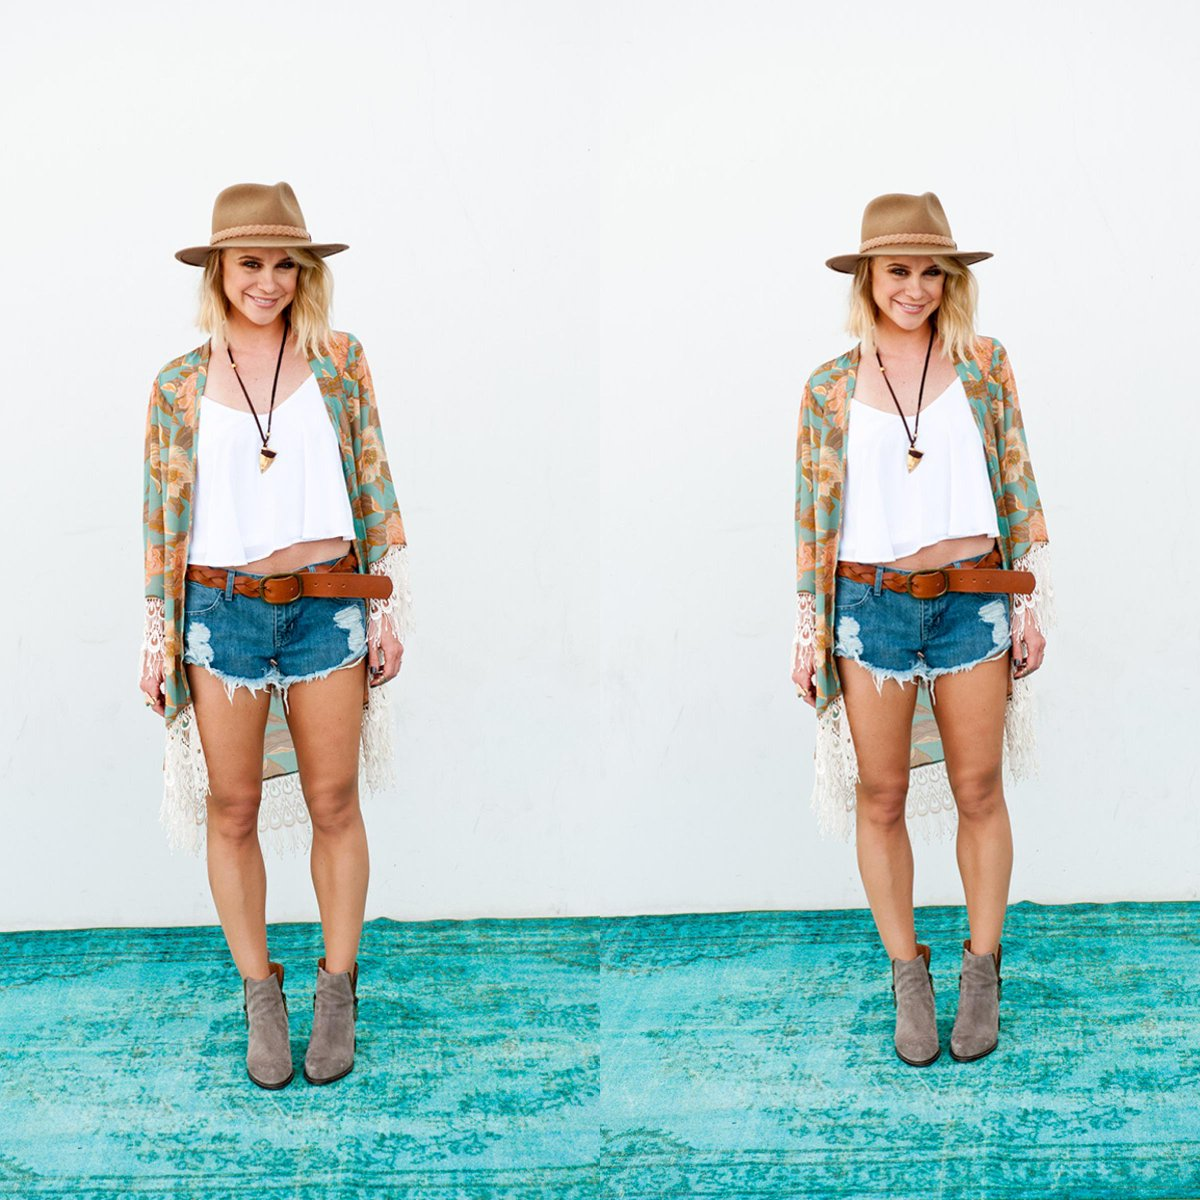 {{DAY 3}} is ↠▲@becbecbobec▲↞ #BeccaTobin's outfit is 20% OFF TODAY! Shop here ↠ http://t.co/VbQI3wa6Xz #Coachella http://t.co/1uPN3BGu3r